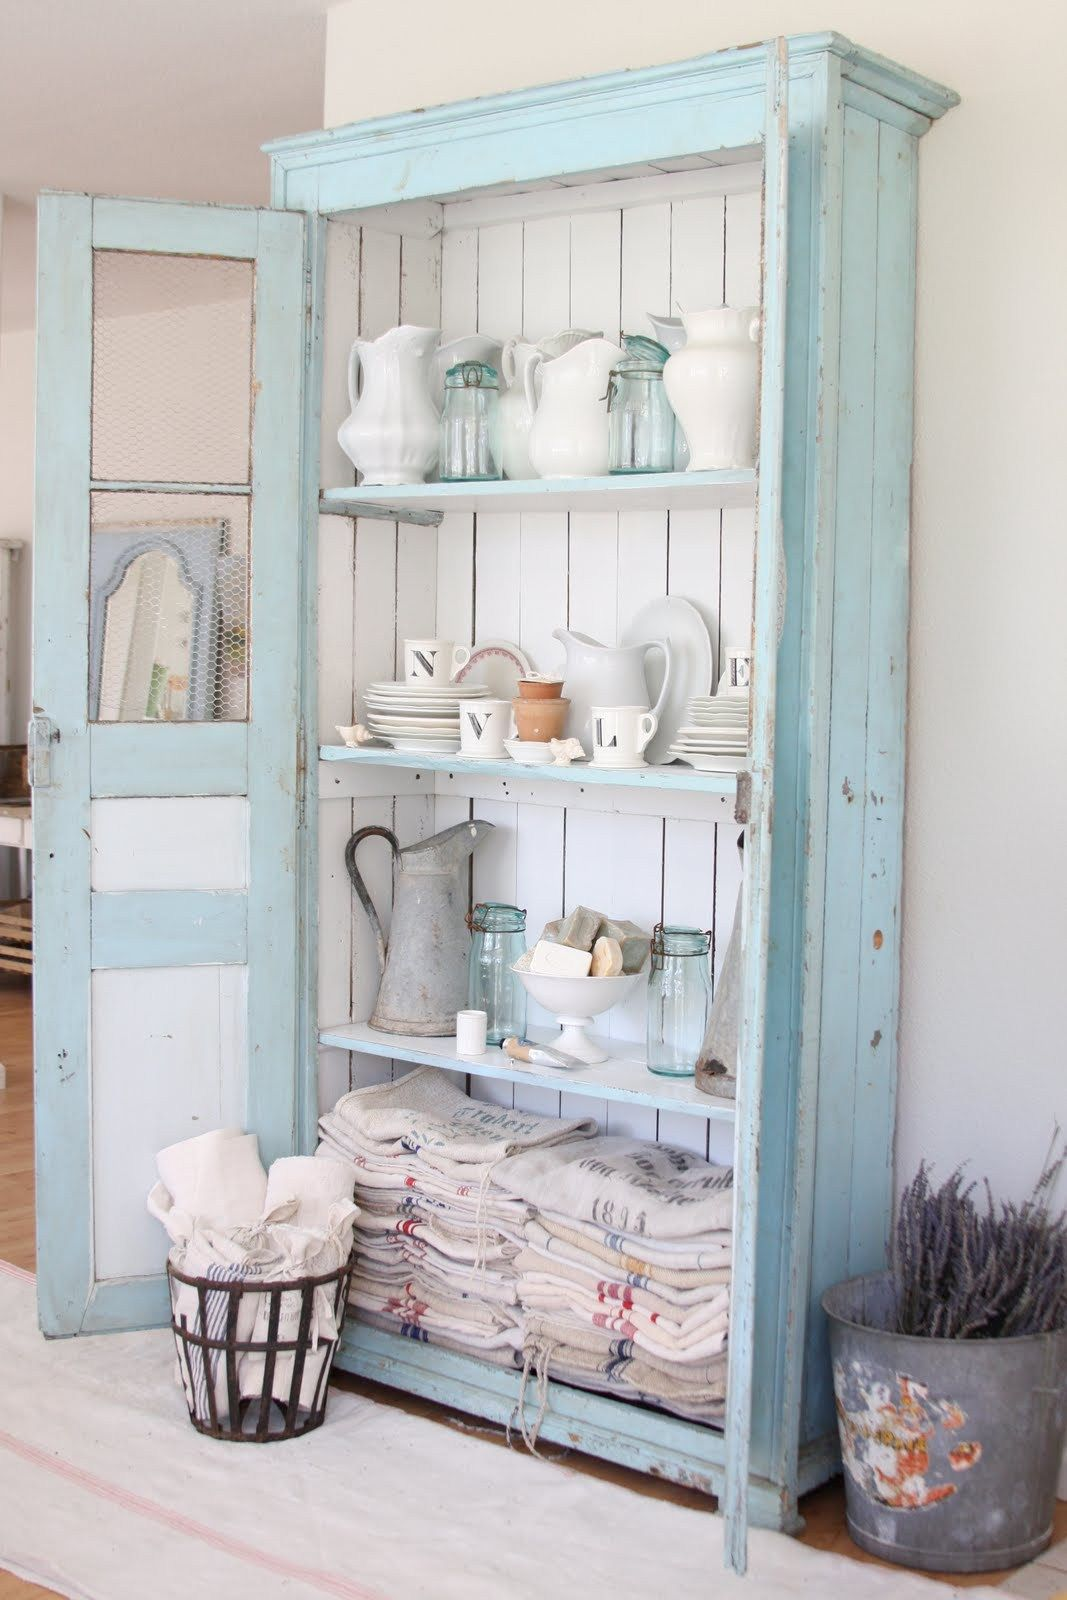 Armarios y vitrinas independientes | Woodworking, Shabby and French ...